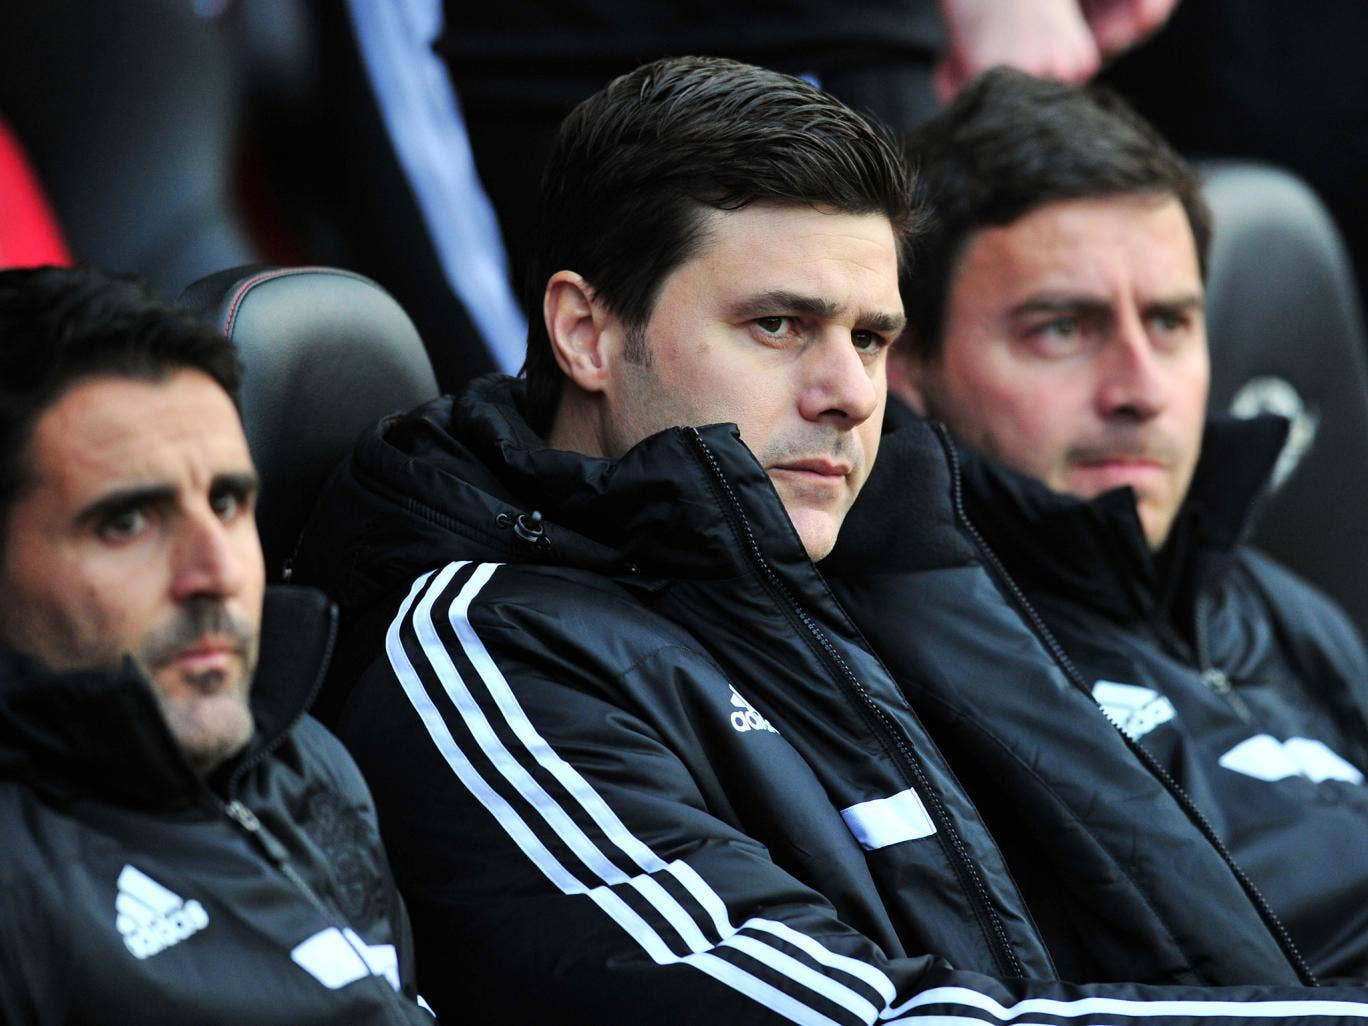 Southampton manager Mauricio Pochettino has revealed that he speaks to both staff and players in perfect English, but will continue to use a translator in press conferences